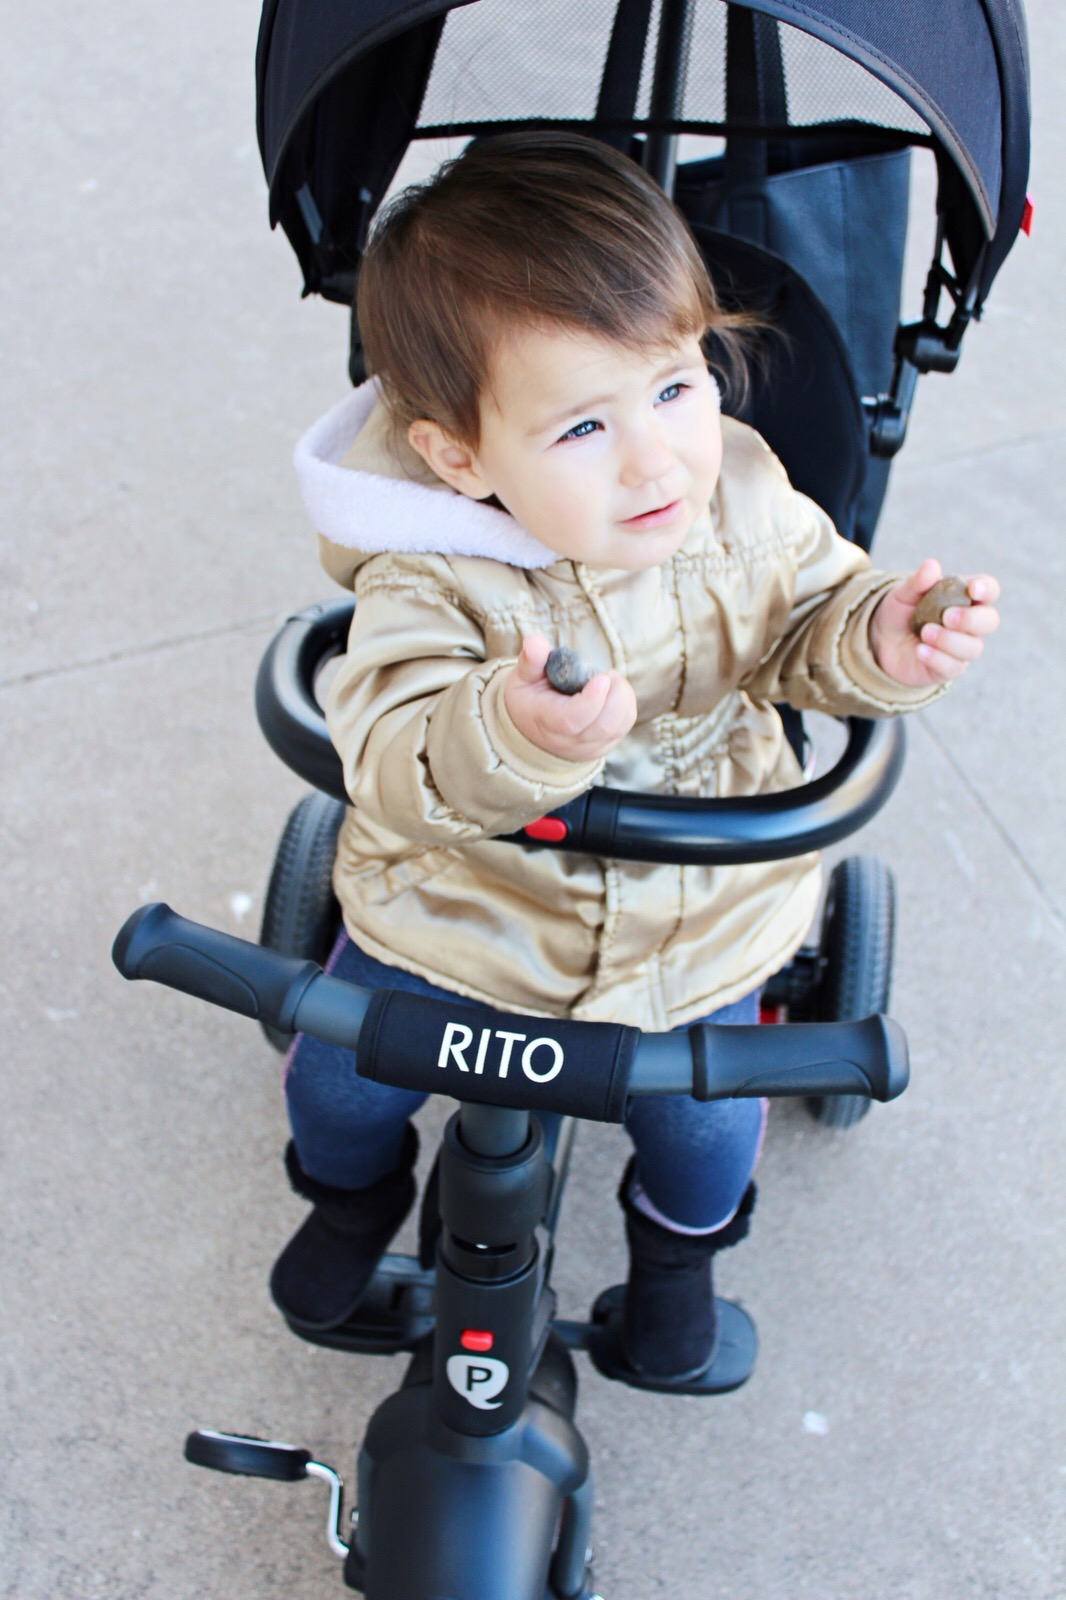 Ritotrike: the trike that does it all. Honestreview.